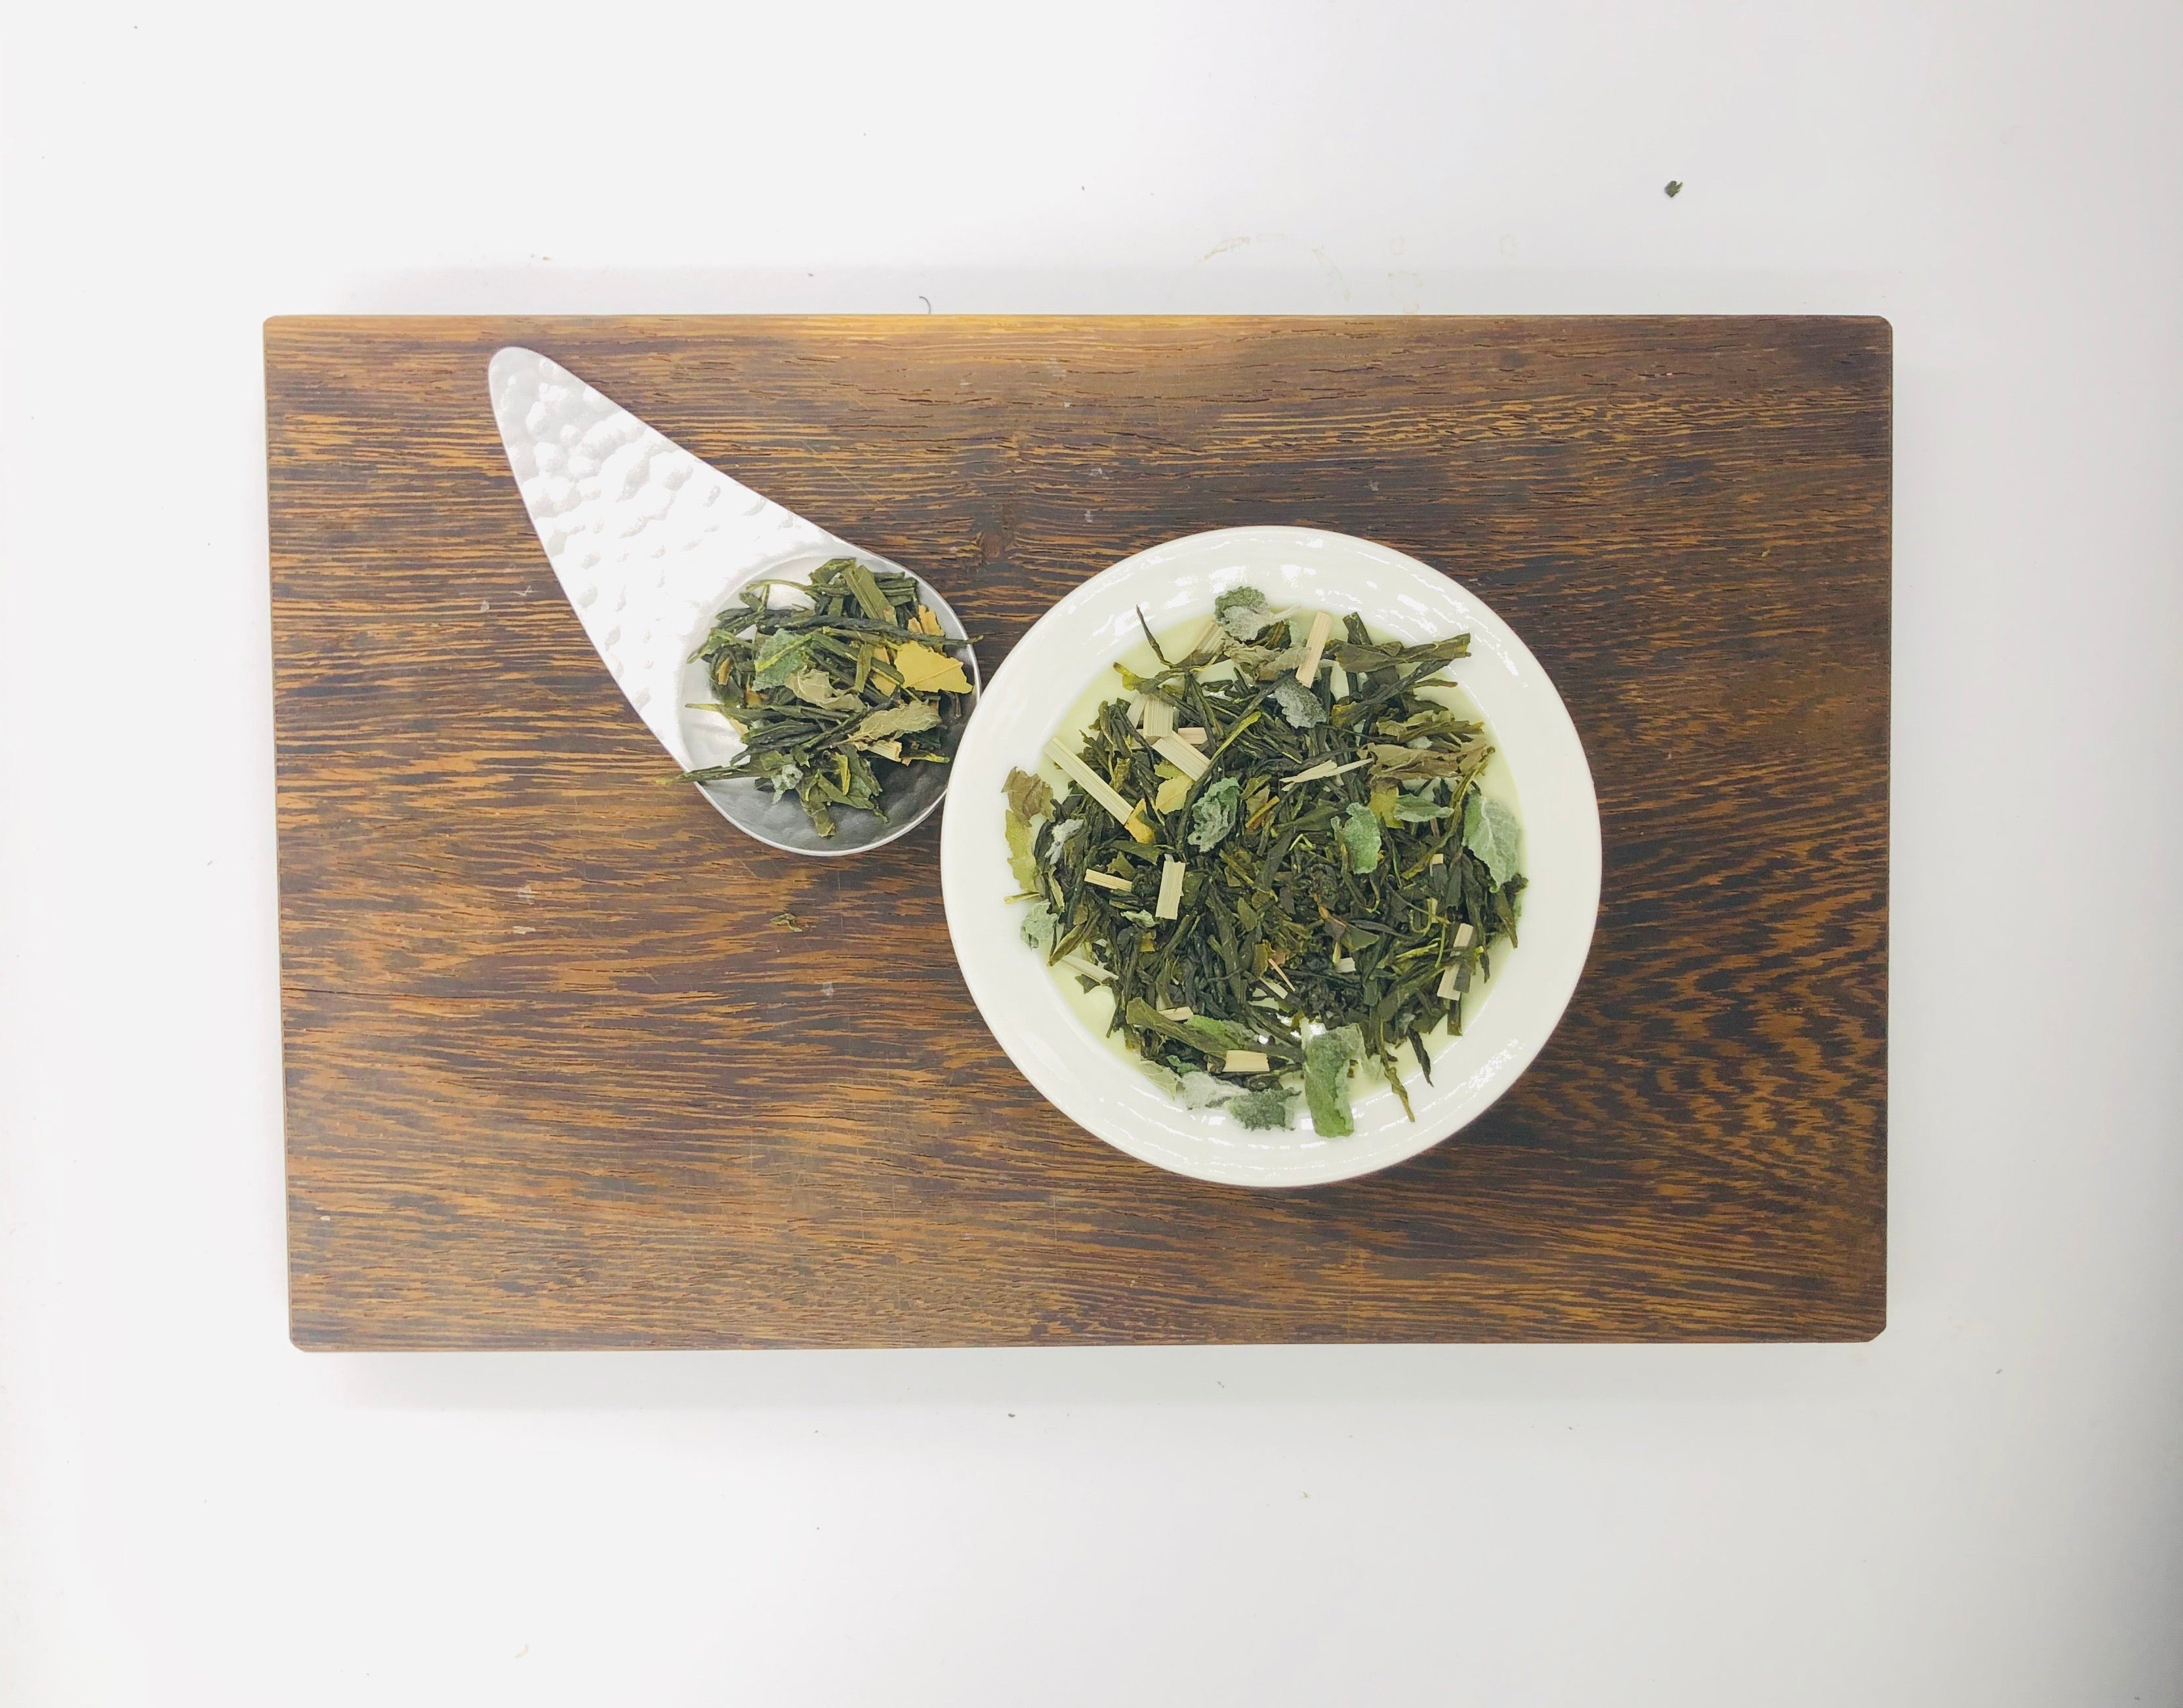 Original blended tea (sencha)